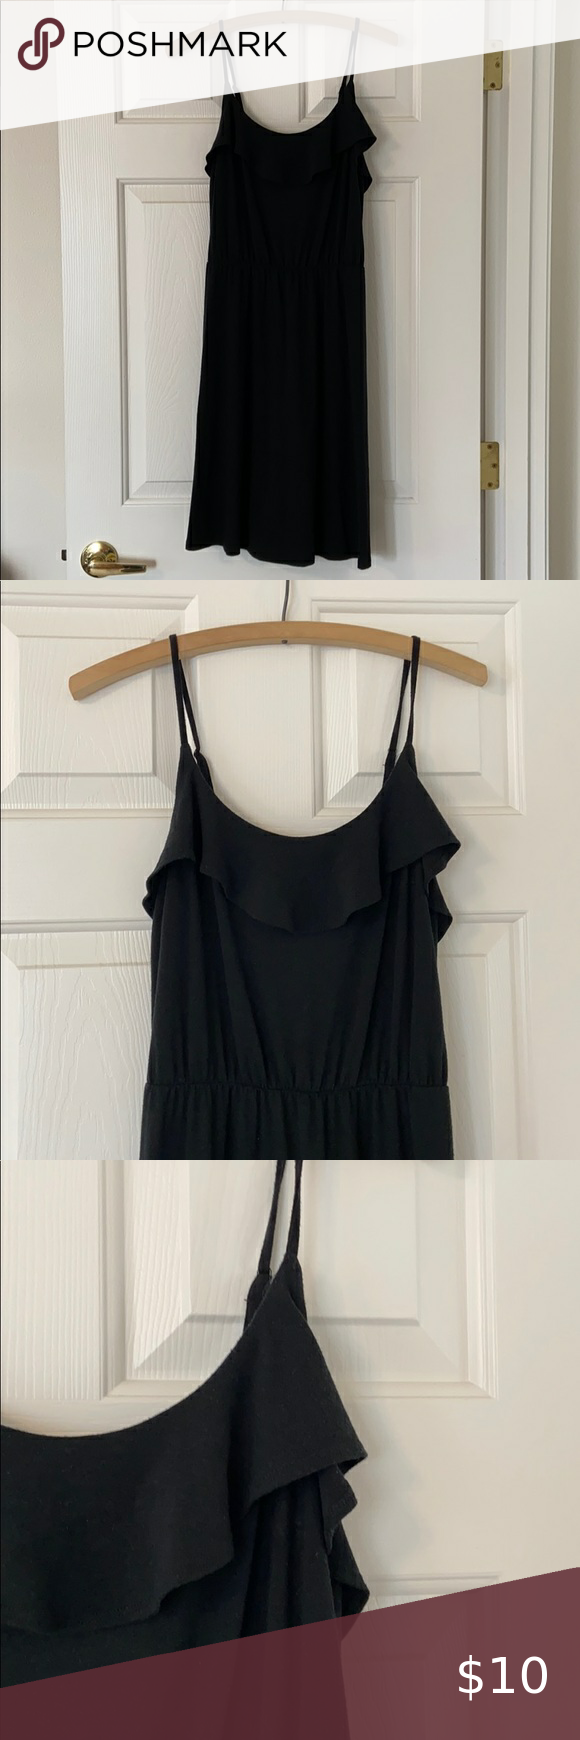 Mossimo Supply Co Target Dress Worn Once Black Mossimo Dress From Target Adjustable Straps Super Comfy Mossimo Supply Co Target Dress Dresses Mossimo Dress [ 1740 x 580 Pixel ]